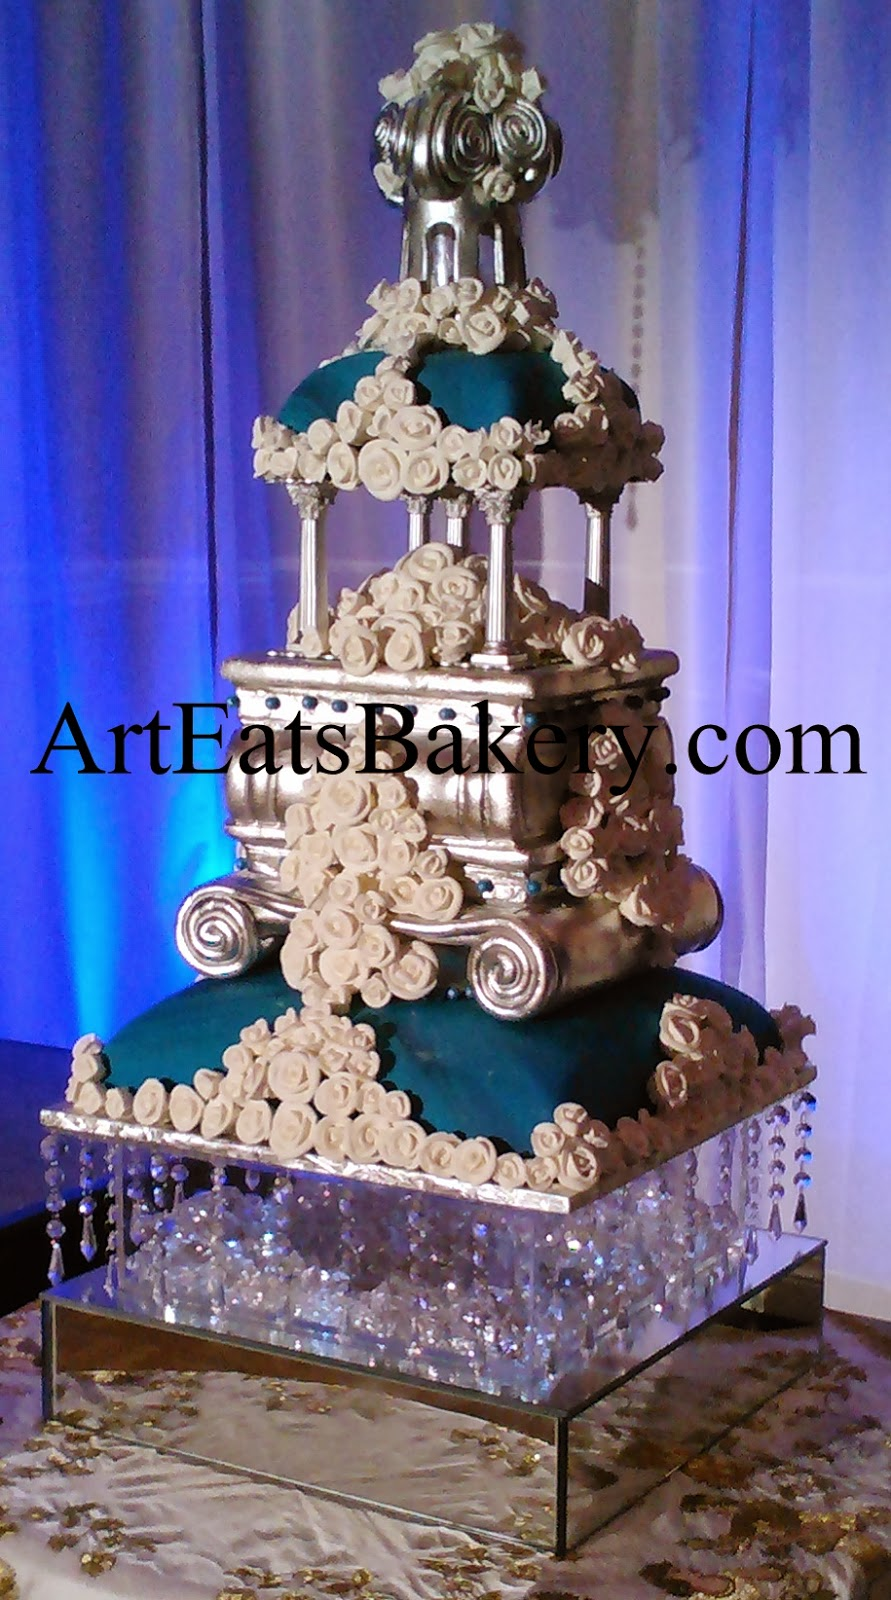 wedding cakes in upstate sc bakery in spartanburg sc eats bakery 24787